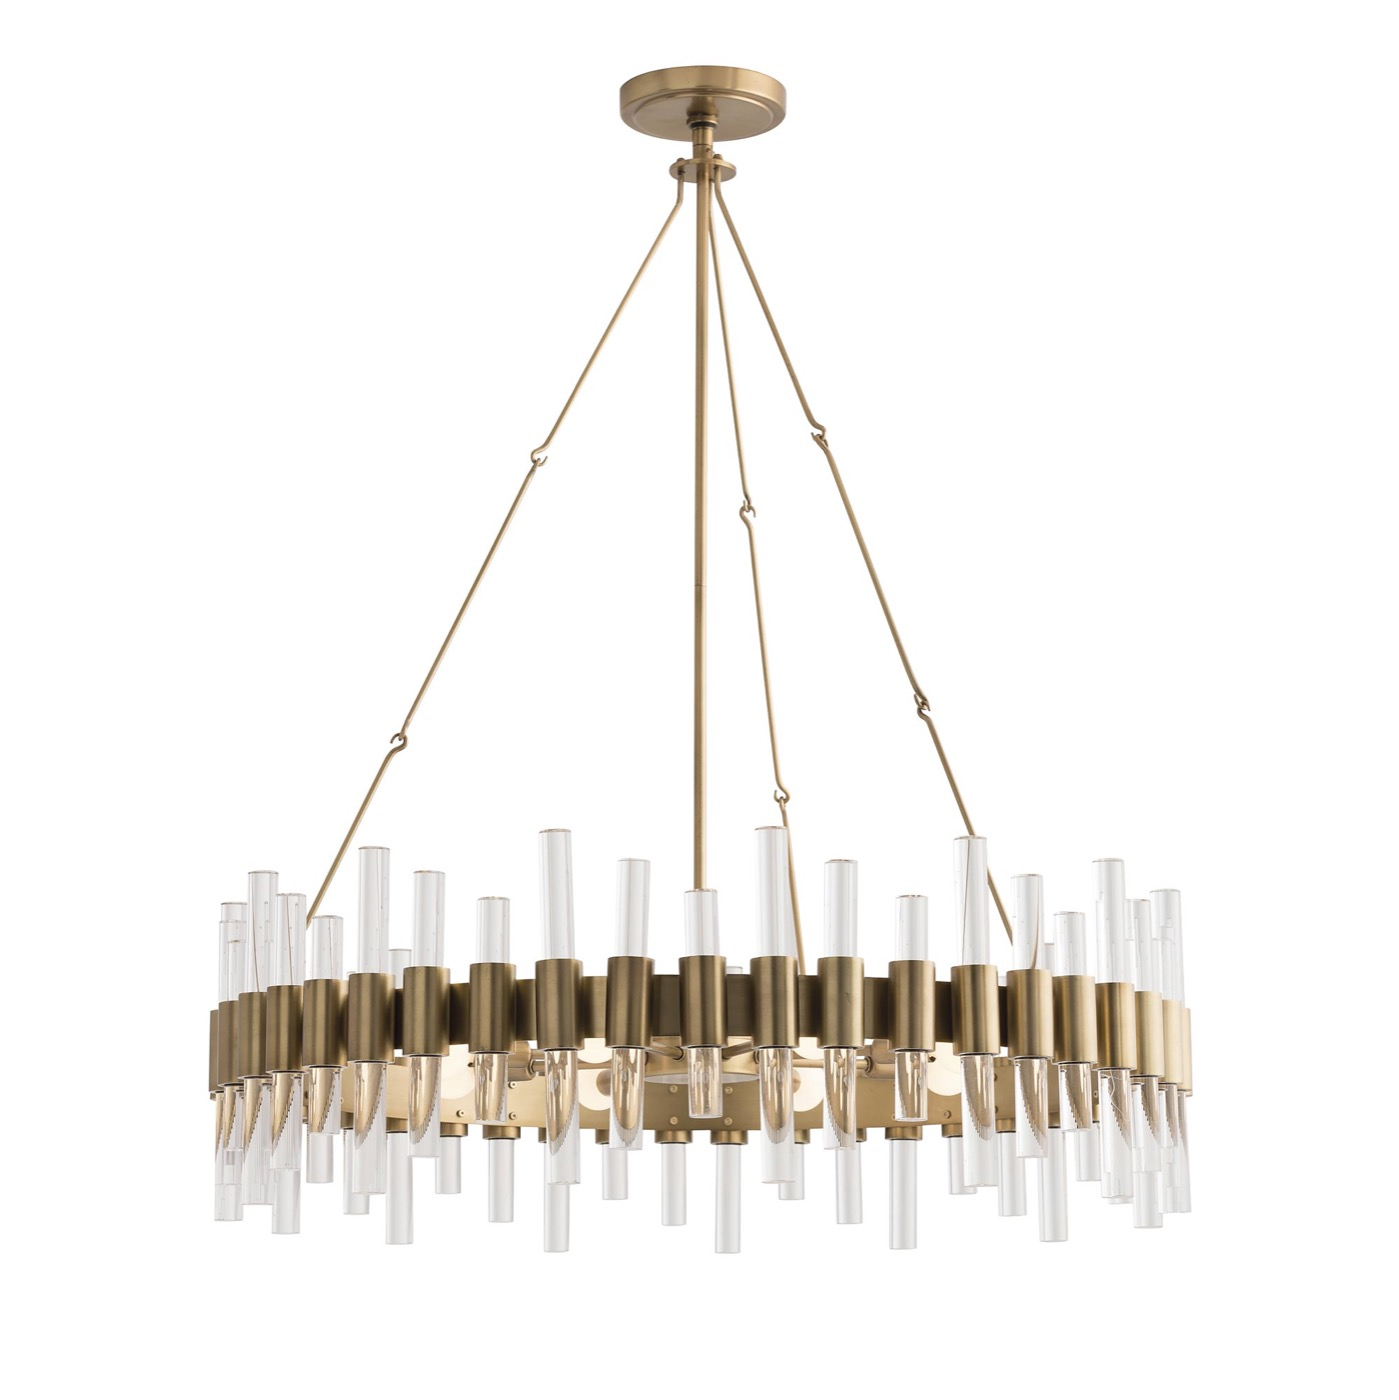 img products lucite kind nj of century thumb and mid chandelier balls decorative a z